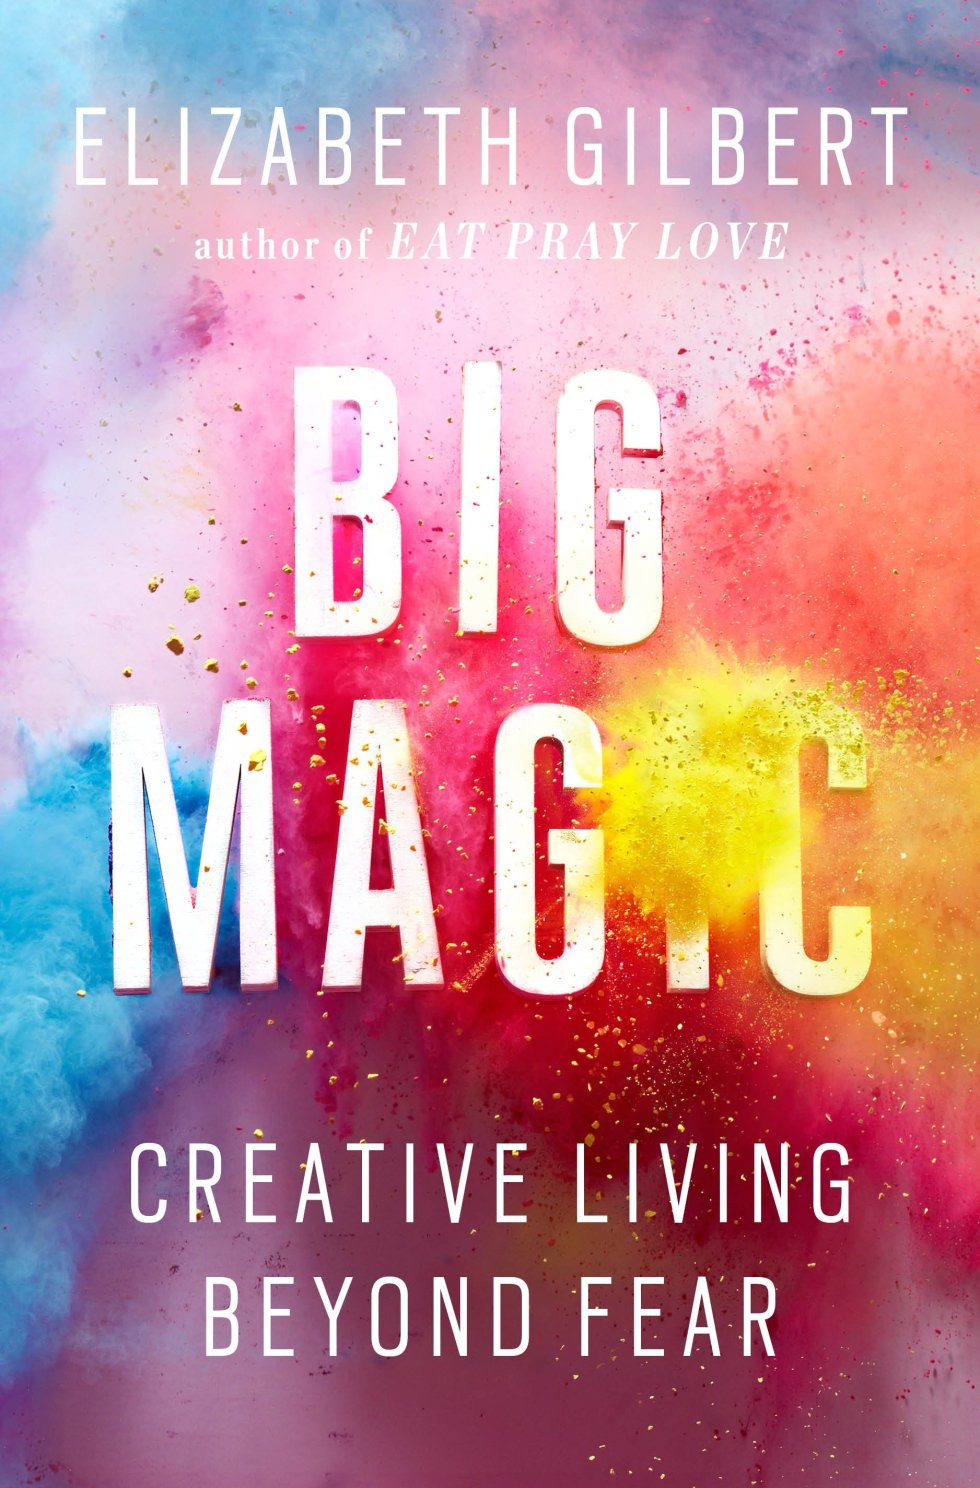 Big Magic Creative Living Beyond Fear, book cover with bright colors